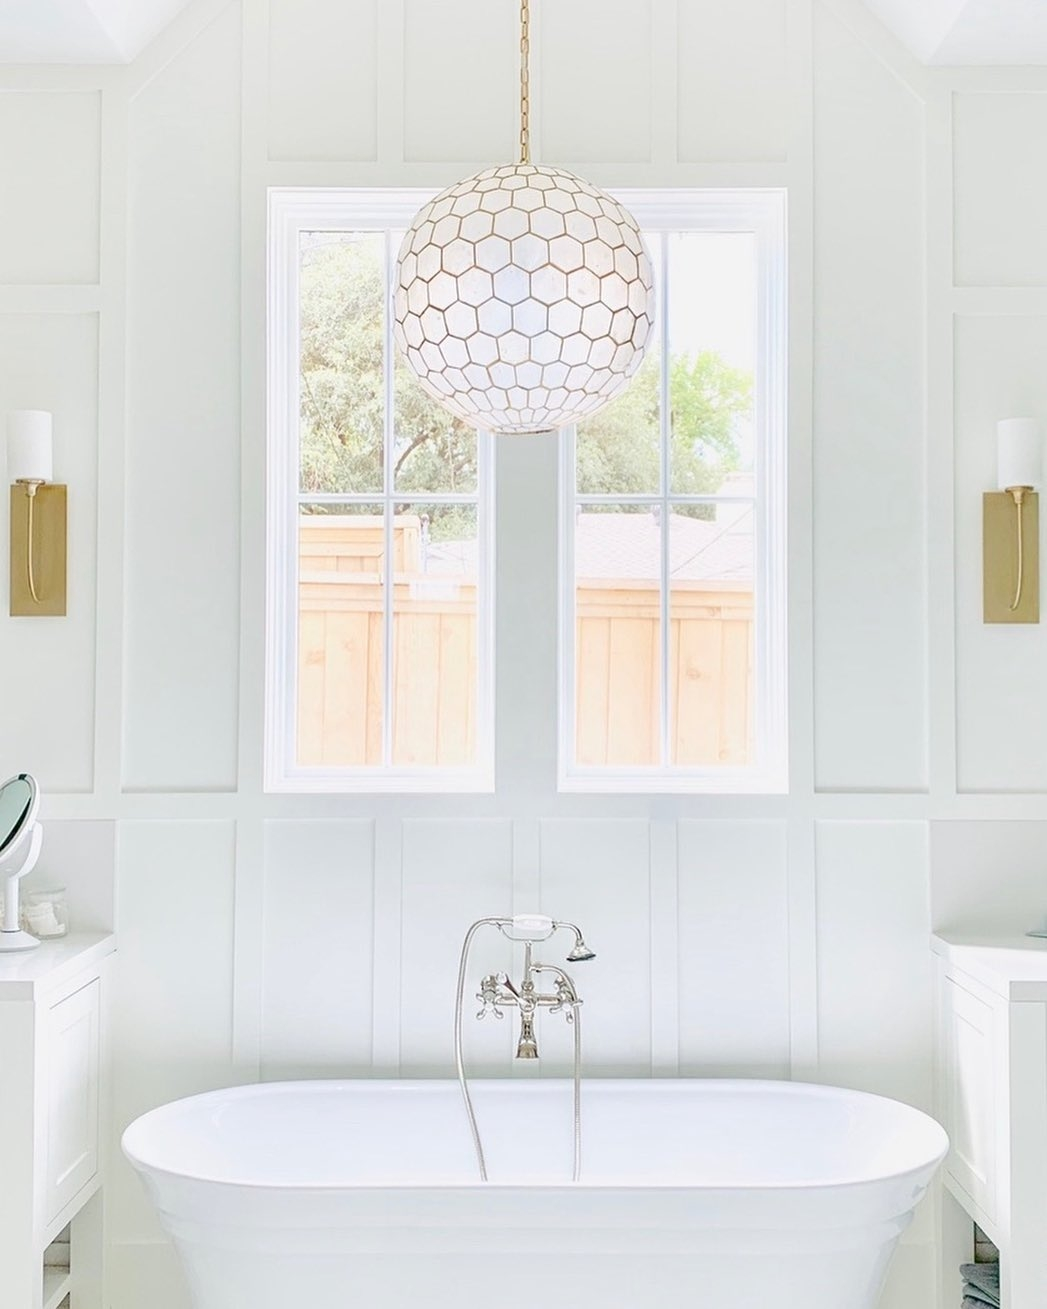 Freestanding bathtub with white picture windows above and a glass pendant light